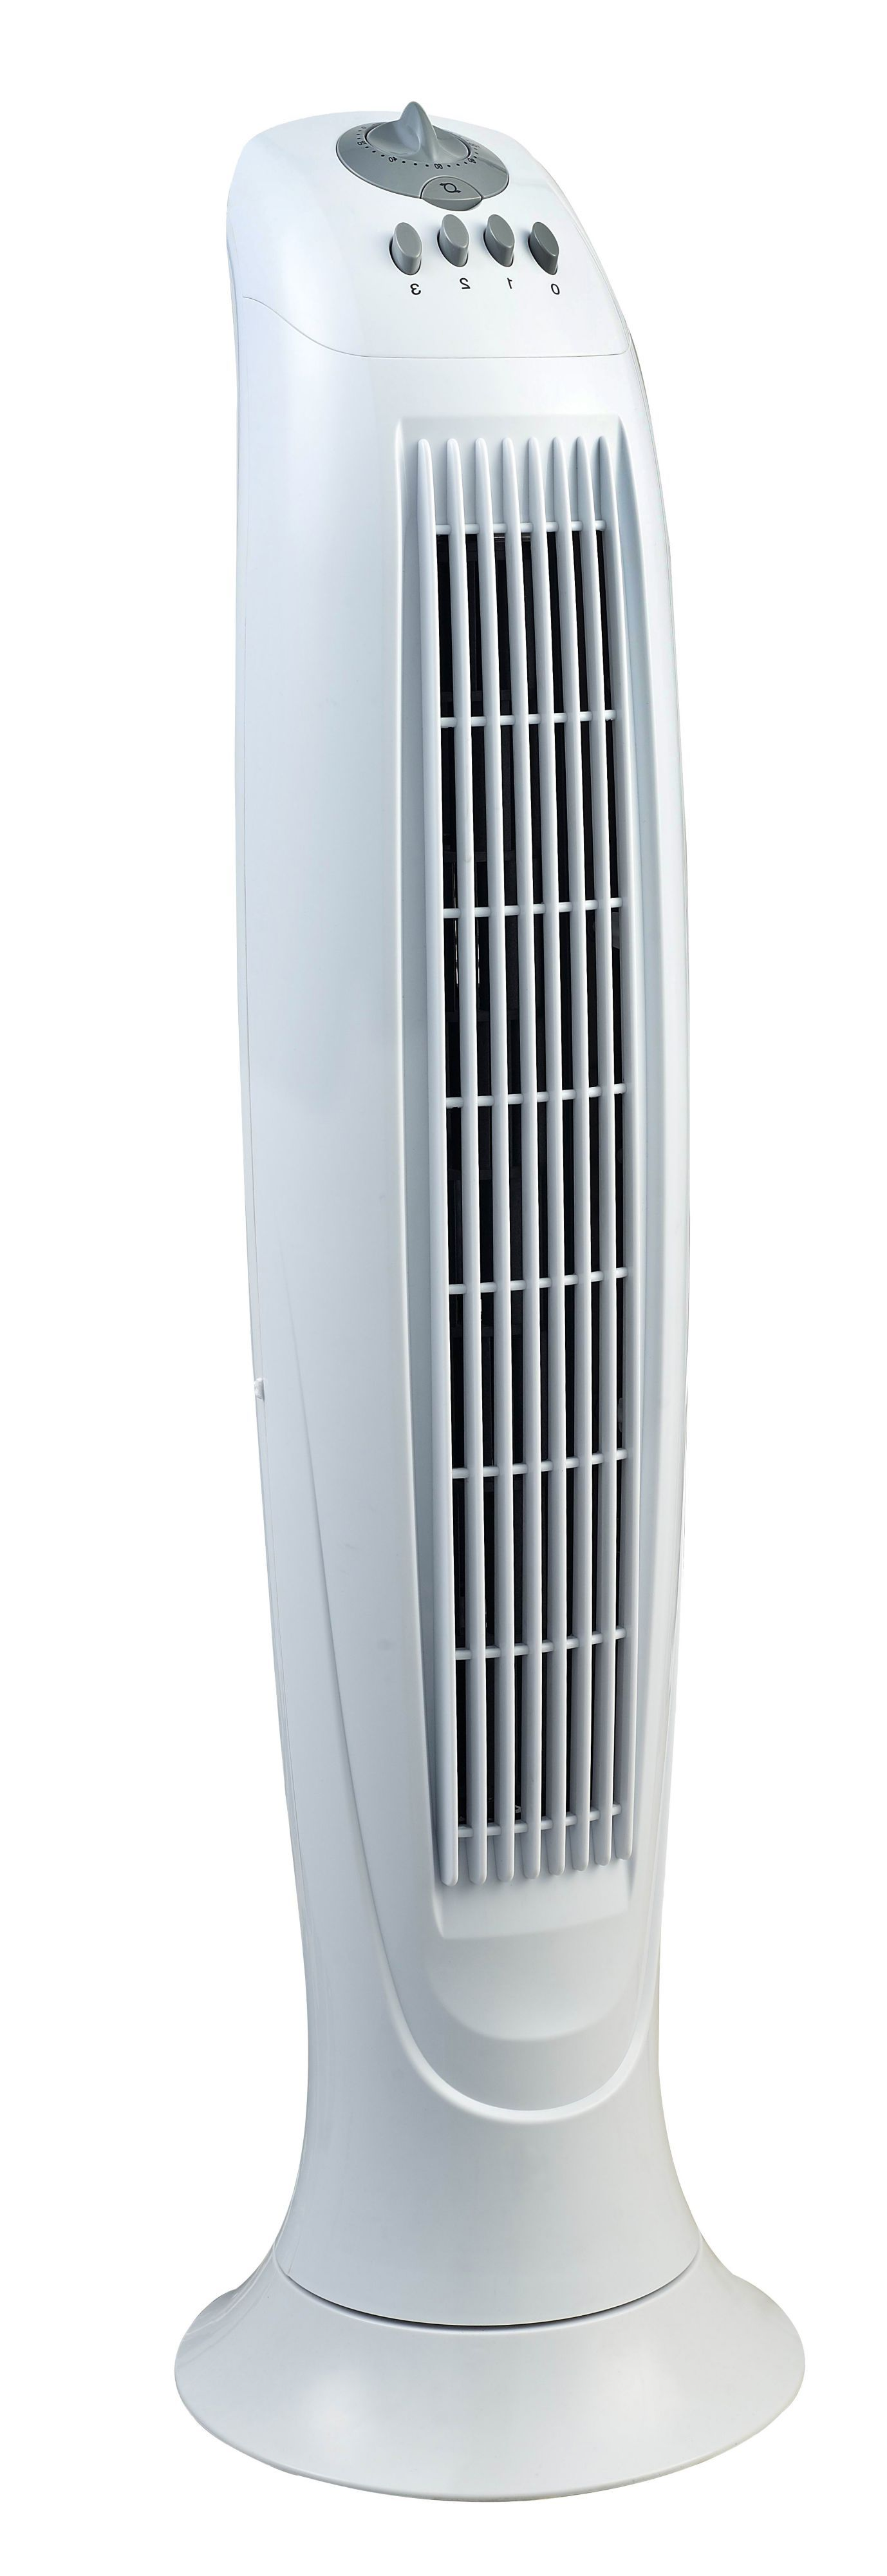 Blyss 3 speed tower Fan Instructions oscillating cooling